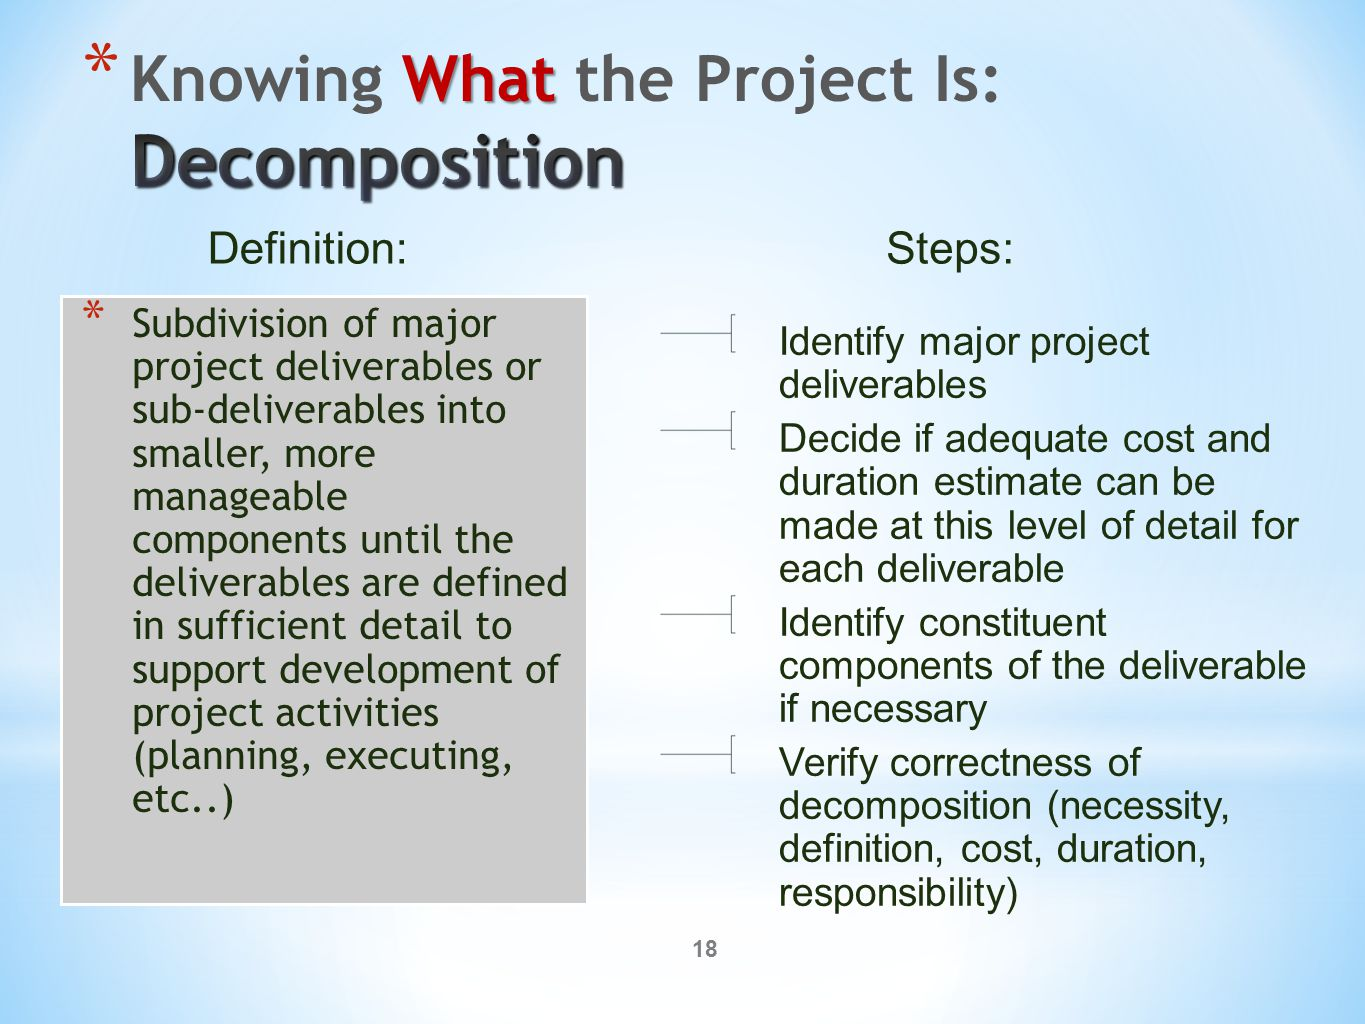 18 * Subdivision of major project deliverables or sub-deliverables into smaller, more manageable components until the deliverables are defined in sufficient detail to support development of project activities (planning, executing, etc..) Identify major project deliverables Decide if adequate cost and duration estimate can be made at this level of detail for each deliverable Identify constituent components of the deliverable if necessary Verify correctness of decomposition (necessity, definition, cost, duration, responsibility) Definition:Steps: